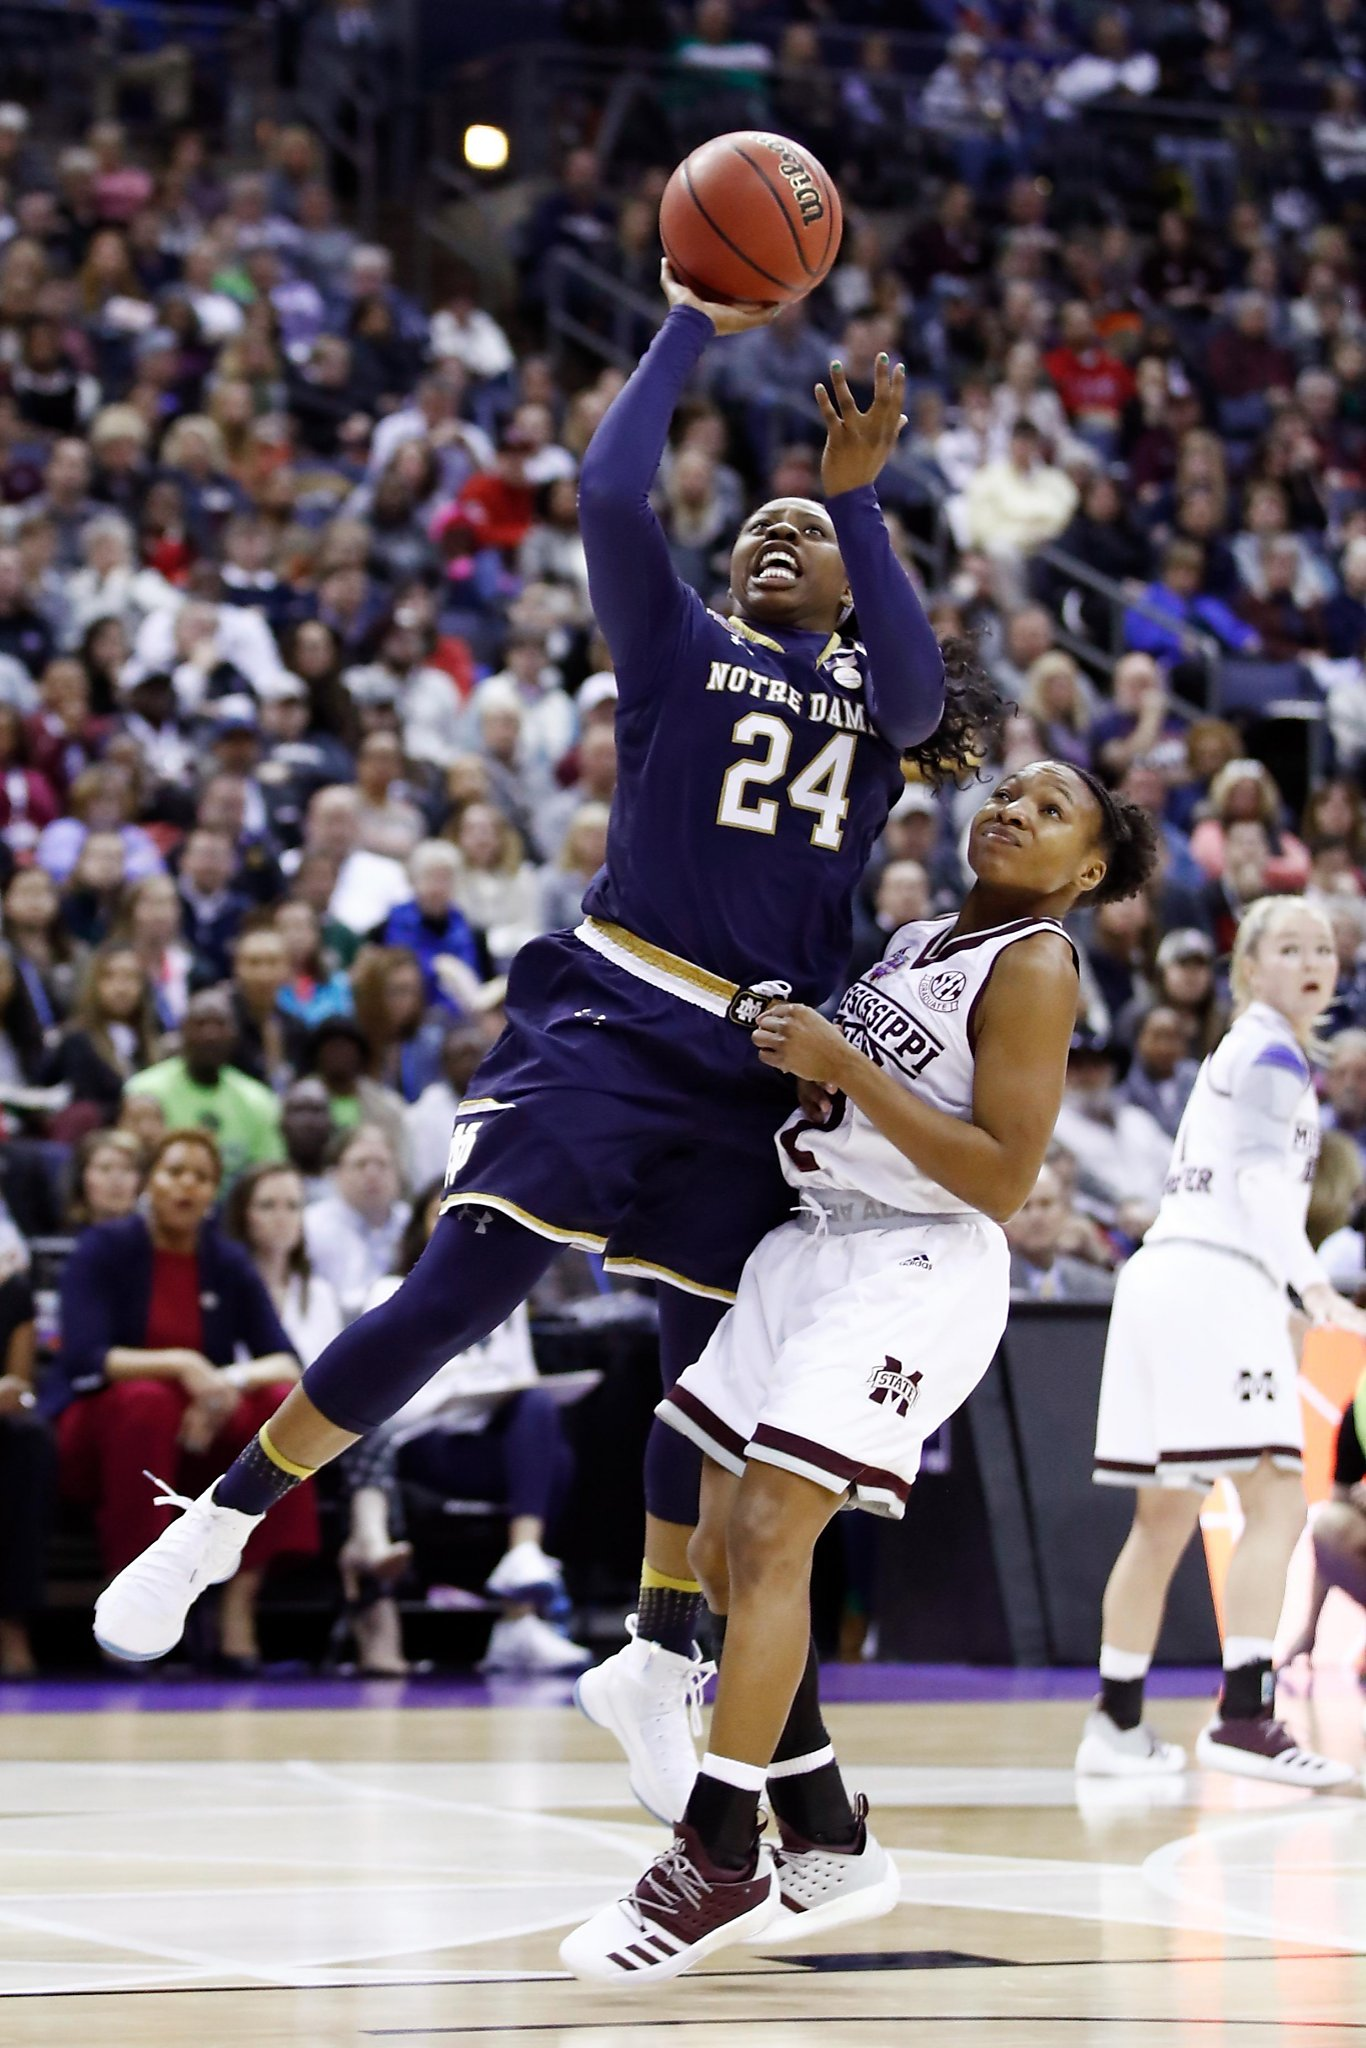 b7cebe176230 Arike Ogunbowale s second big shot of Final Four lifts Notre Dame to title